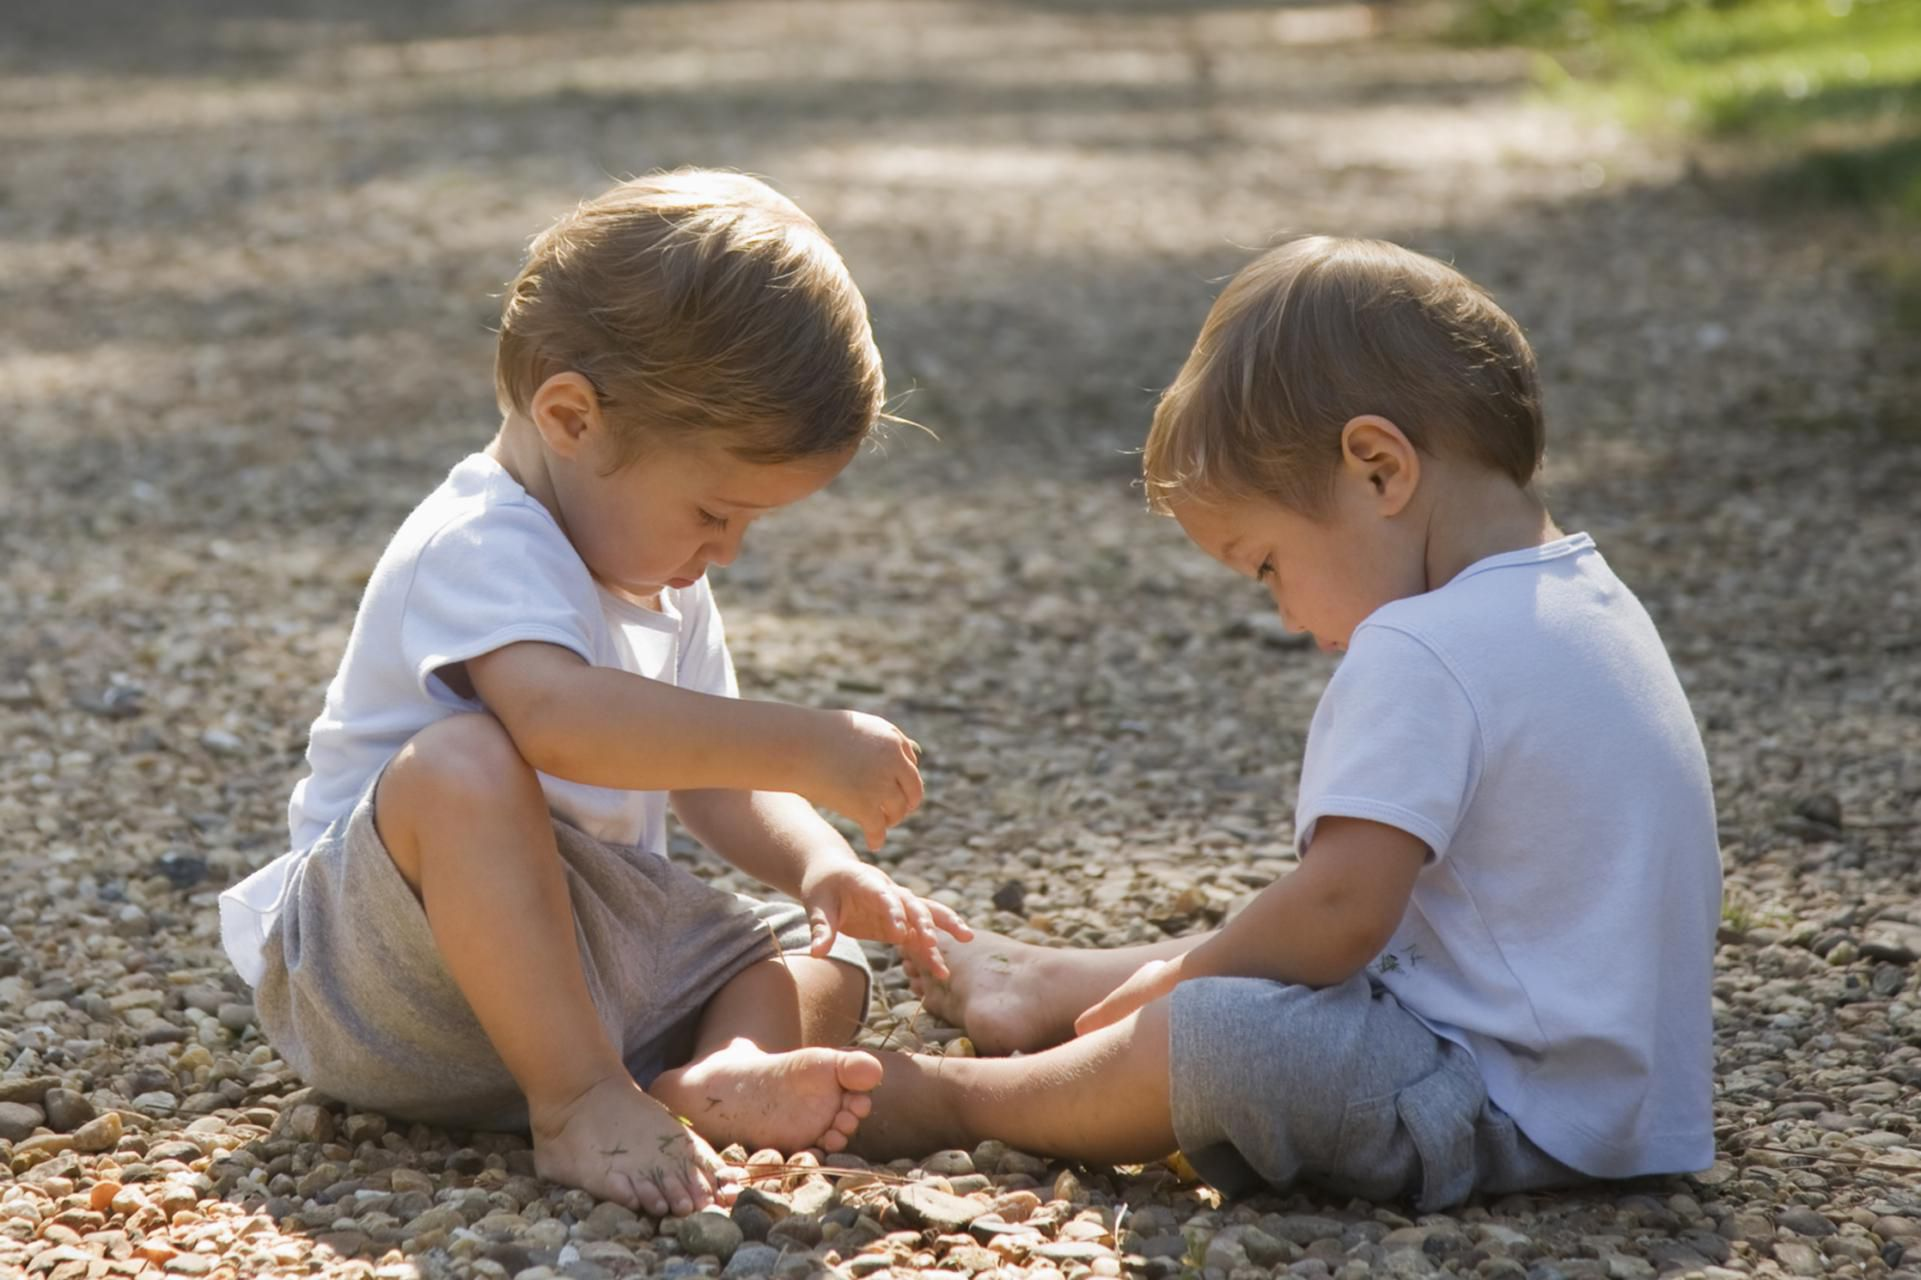 11 Surprising Facts About Fraternal Twins